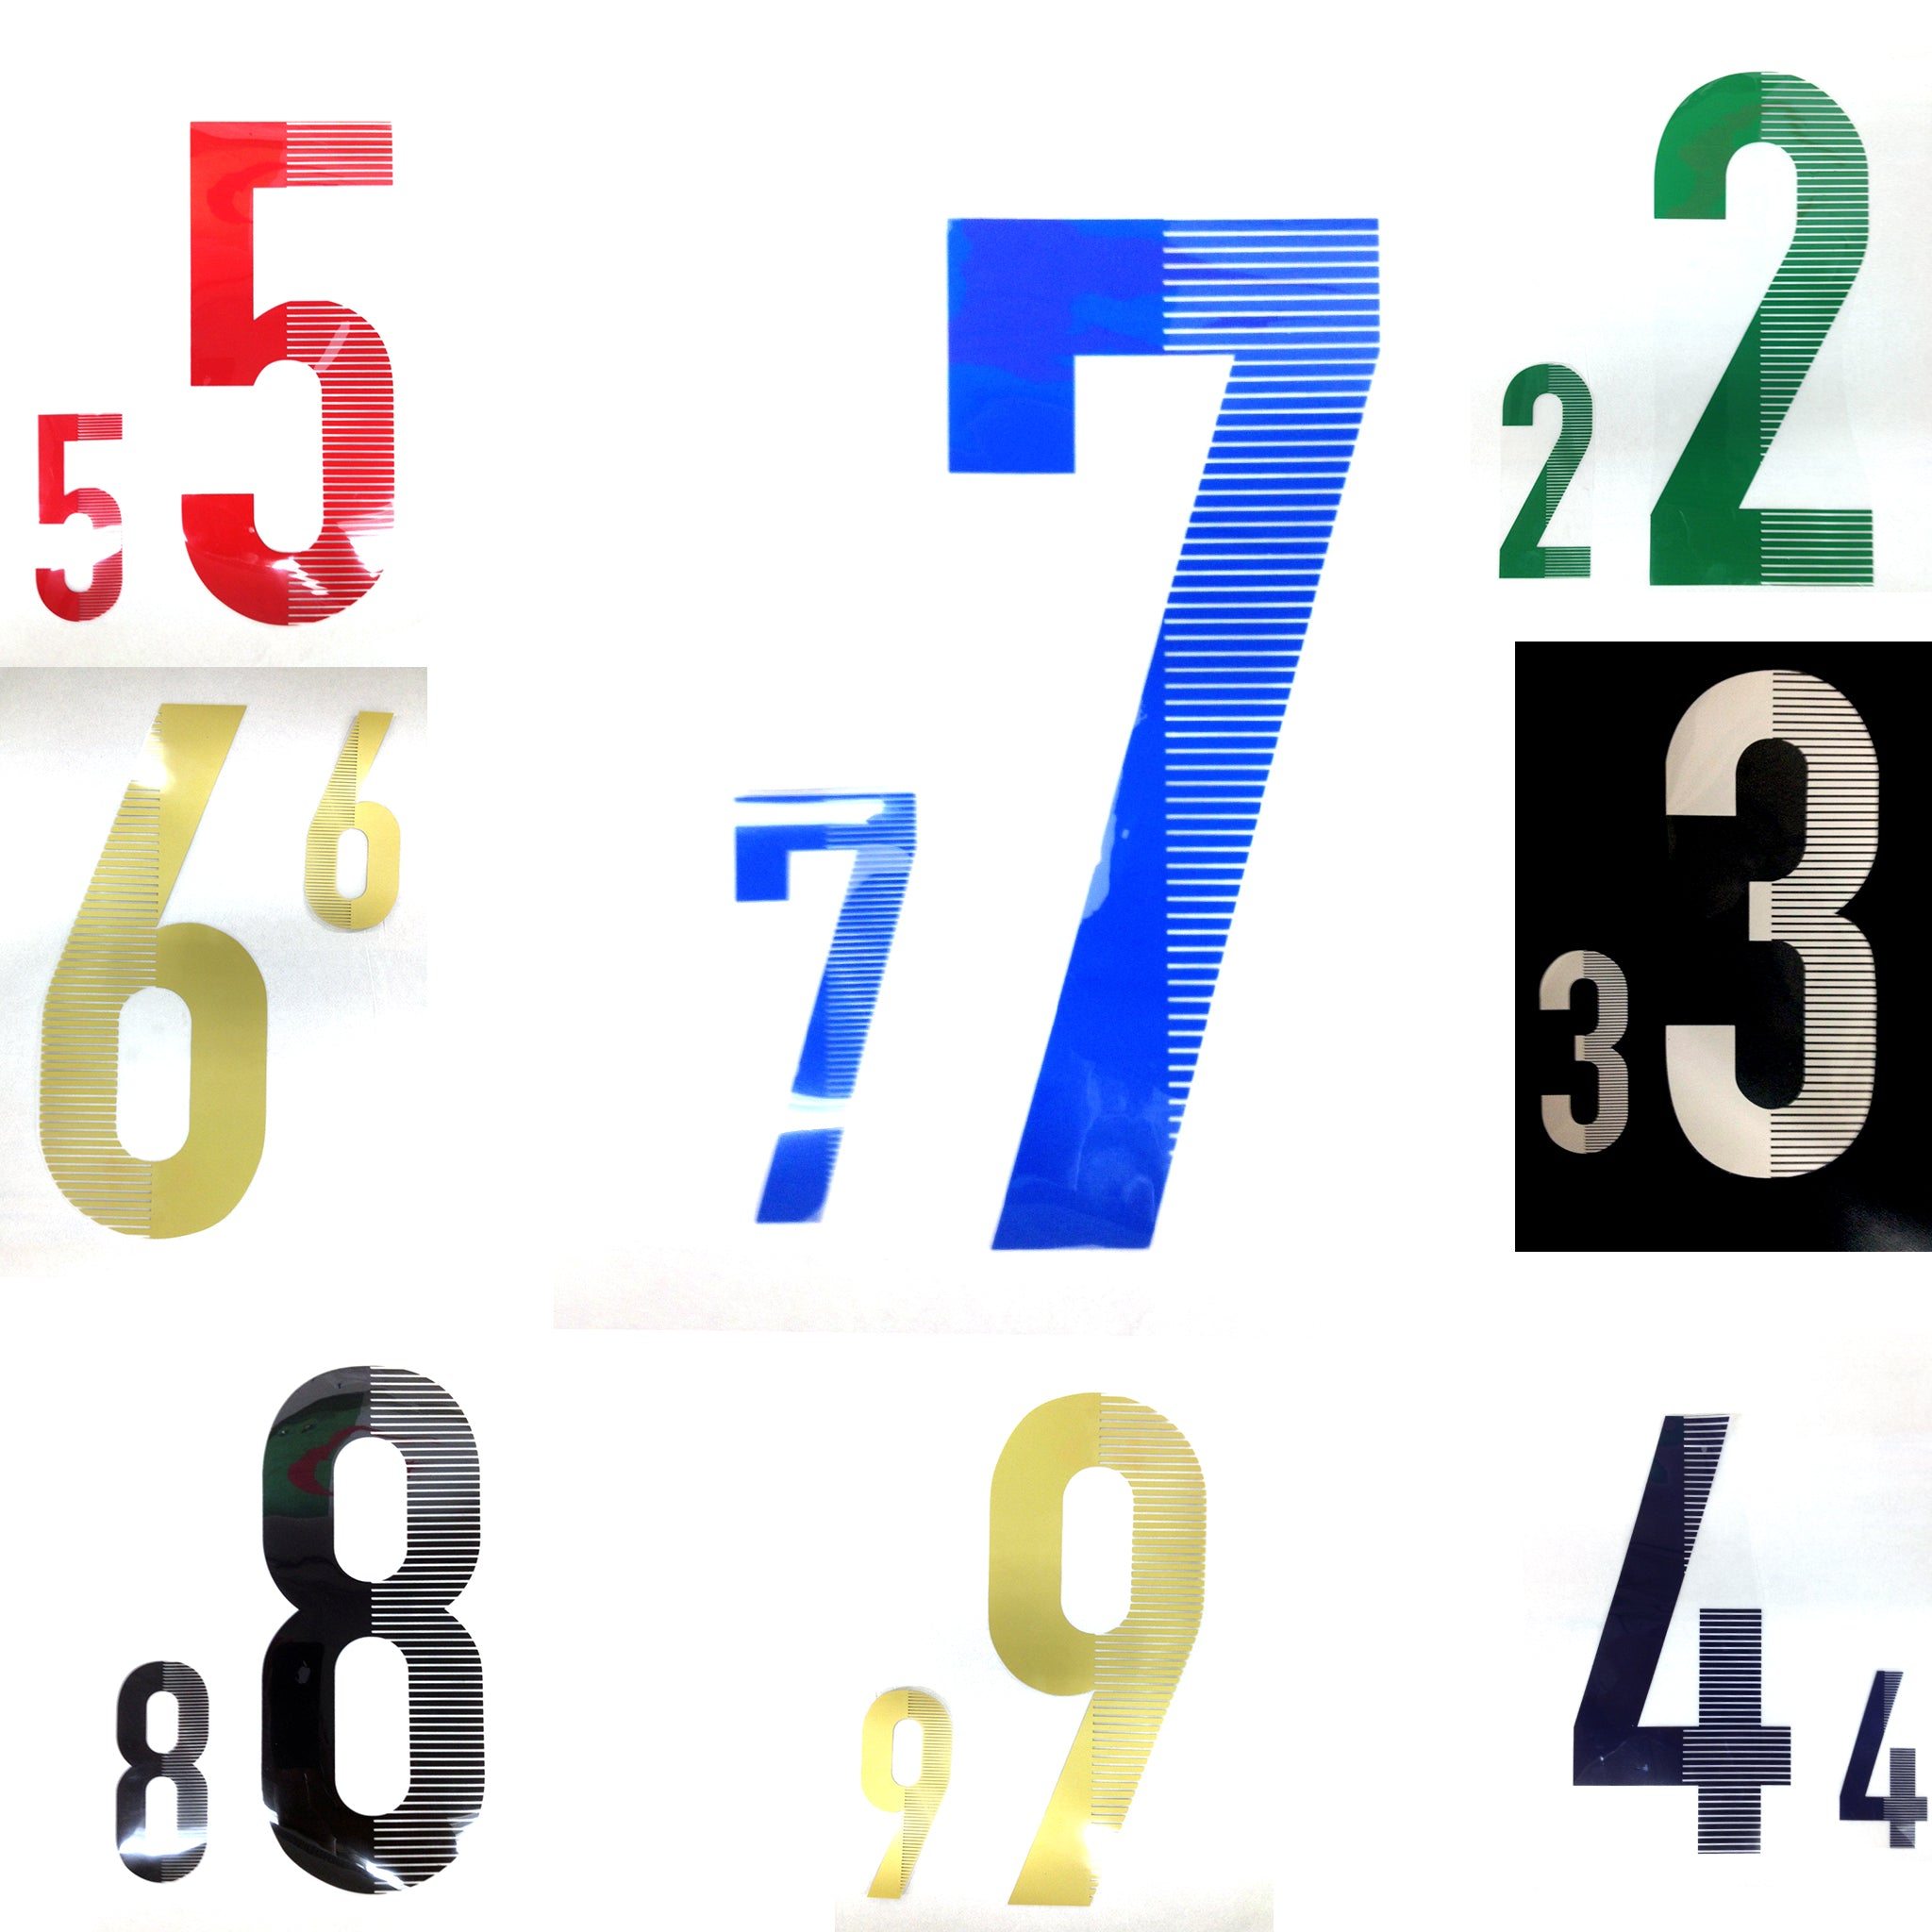 Numbers on Uniforms